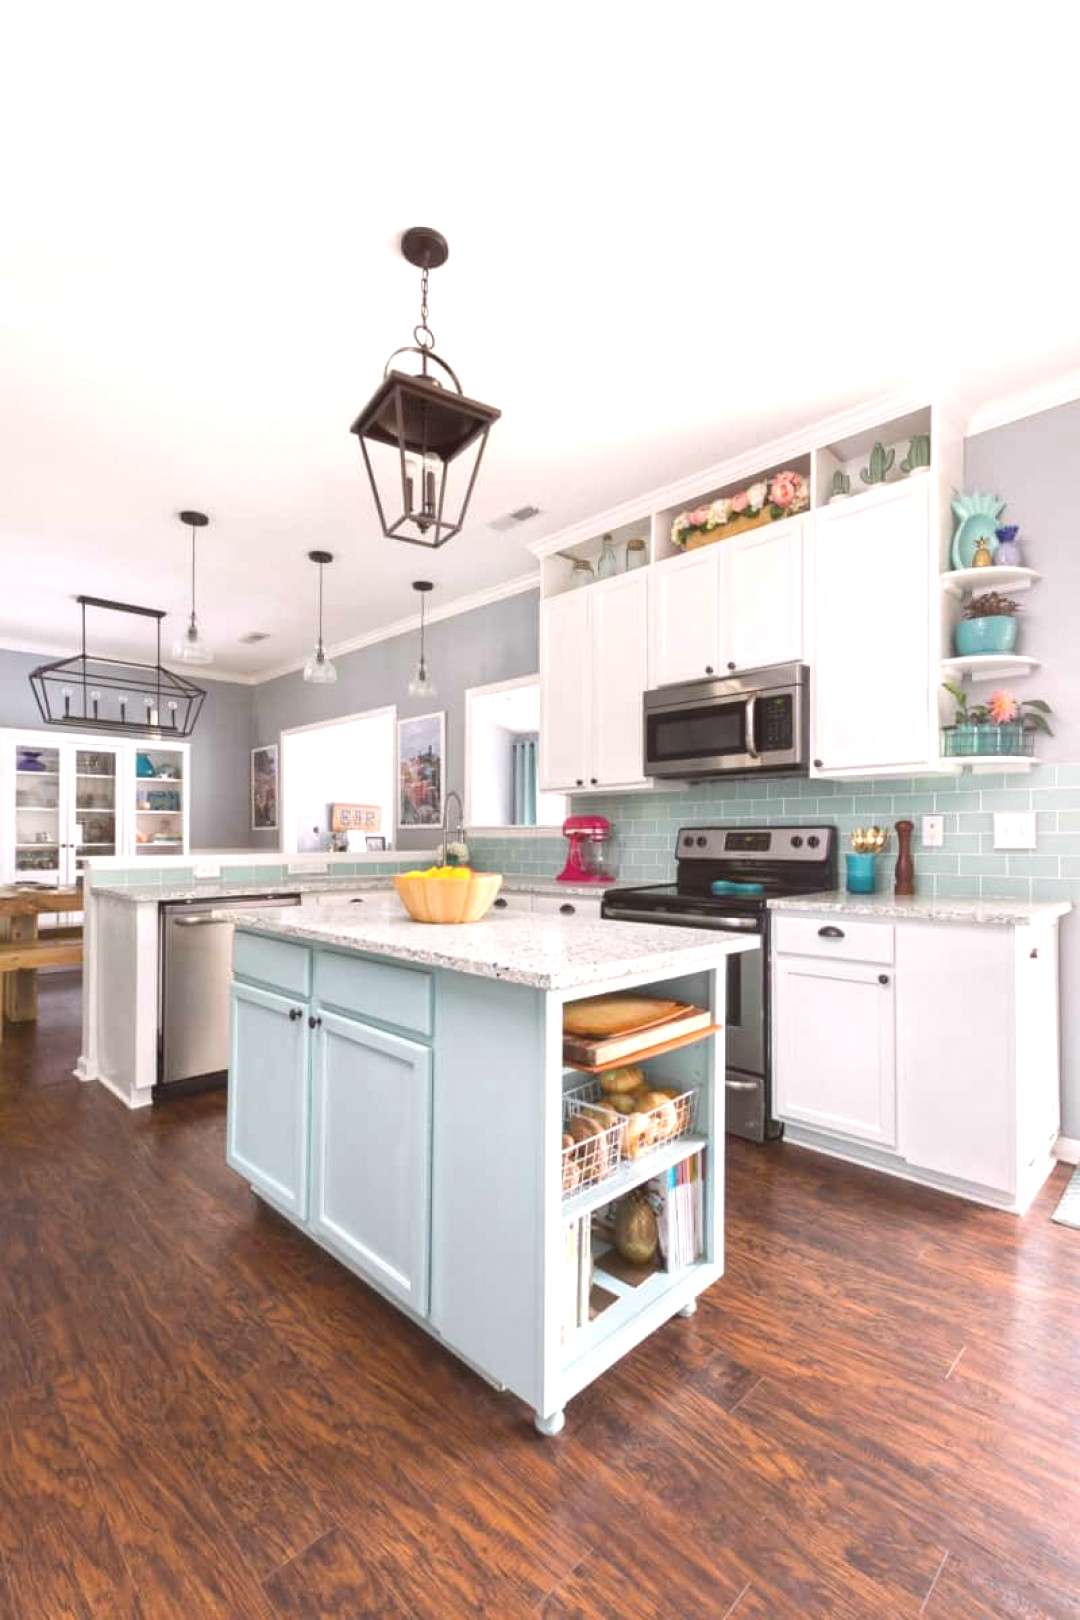 How to extend kitchen cabinets to the ceiling Tired of your short upper kitchen cabinets? It is so